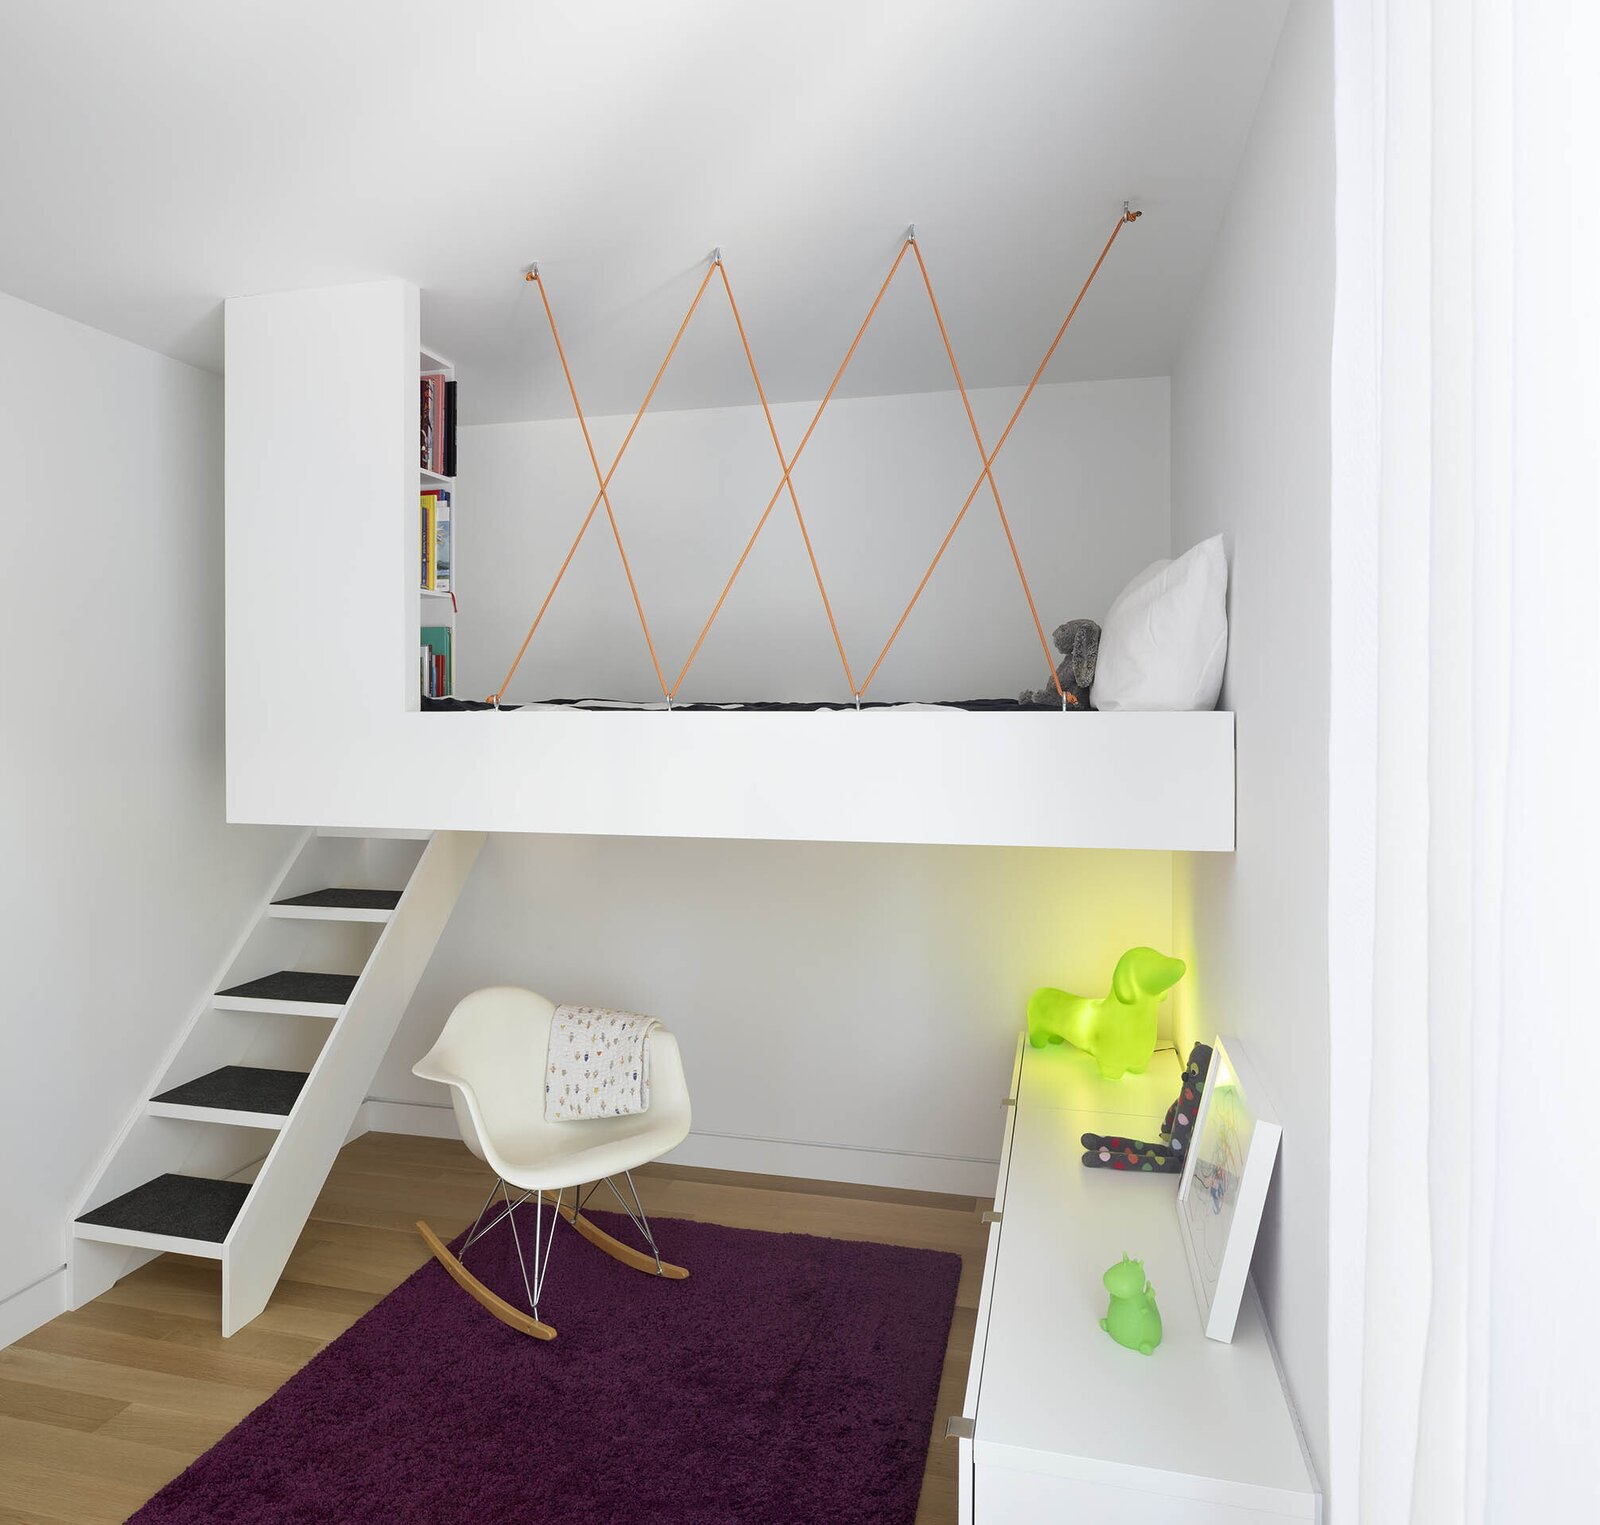 Bedroom, Bunks, Rug Floor, Chair, Shelves, Light Hardwood Floor, Bed, and Rockers  Photo 12 of 16 in An Architect Couple Turn an Urban Eyesore Into a Home That's Both Peaceful and Playful from Bellwoods Lodge